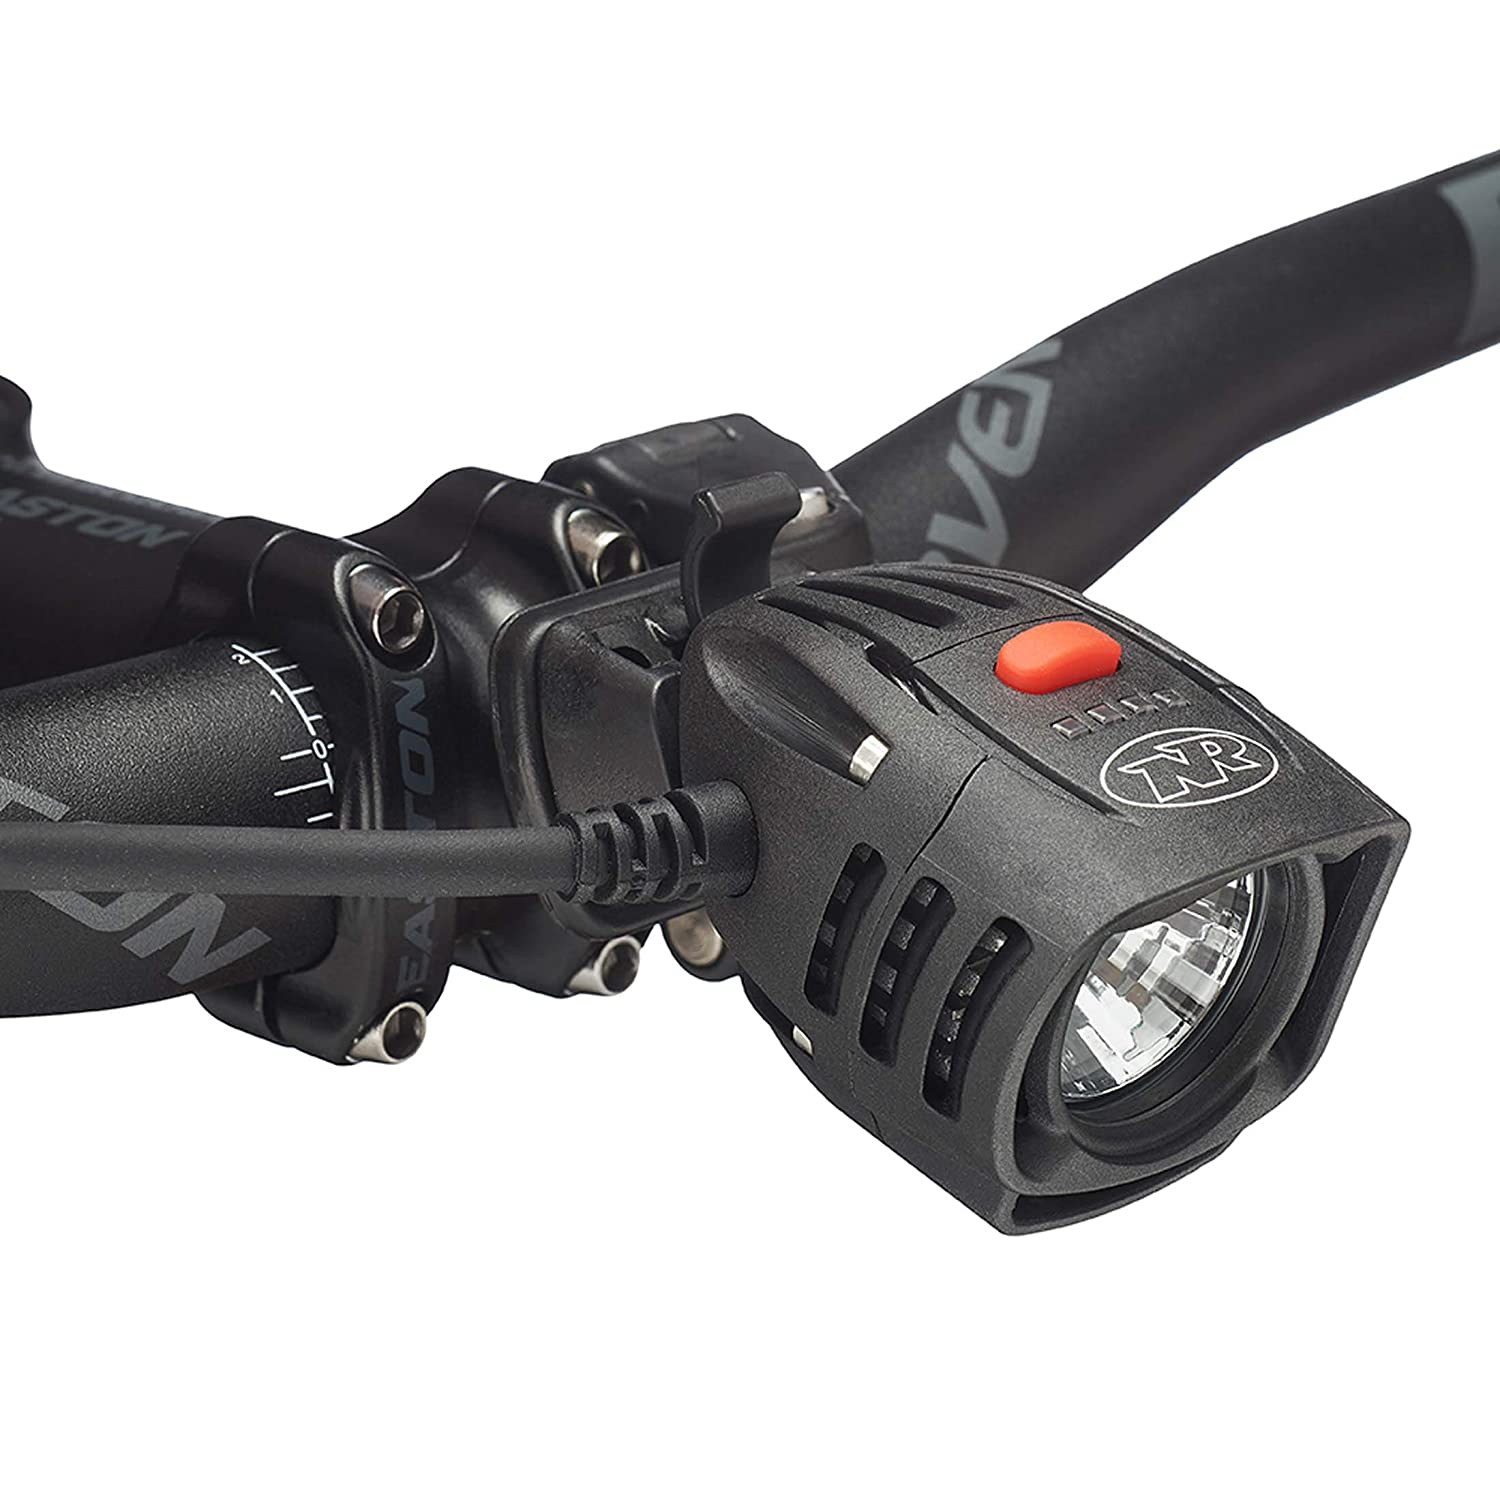 NiteRider Pro 1400 Race, High Performance Lightweight MTB Race Bike Light, 1400 Lumens of Max Output. Durable Bicycle Front Light. Excellent MTB Beam Pattern